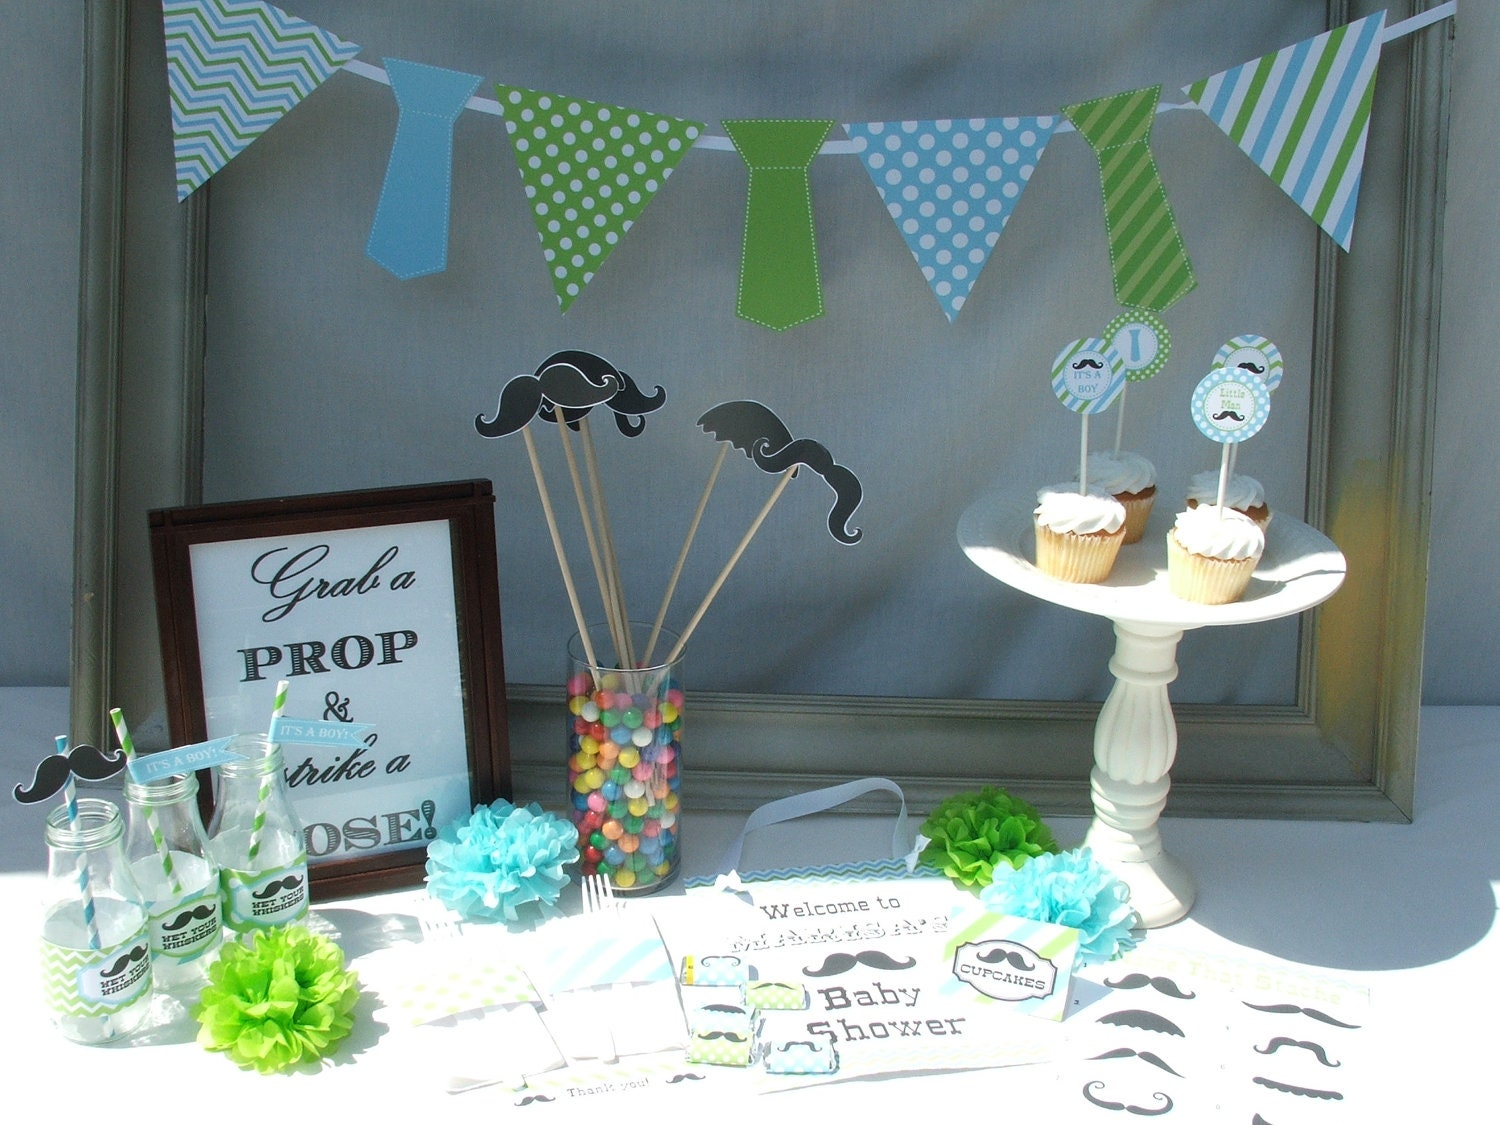 Boy baby shower decorations party favors ideas for Baby shower decoration ideas boy